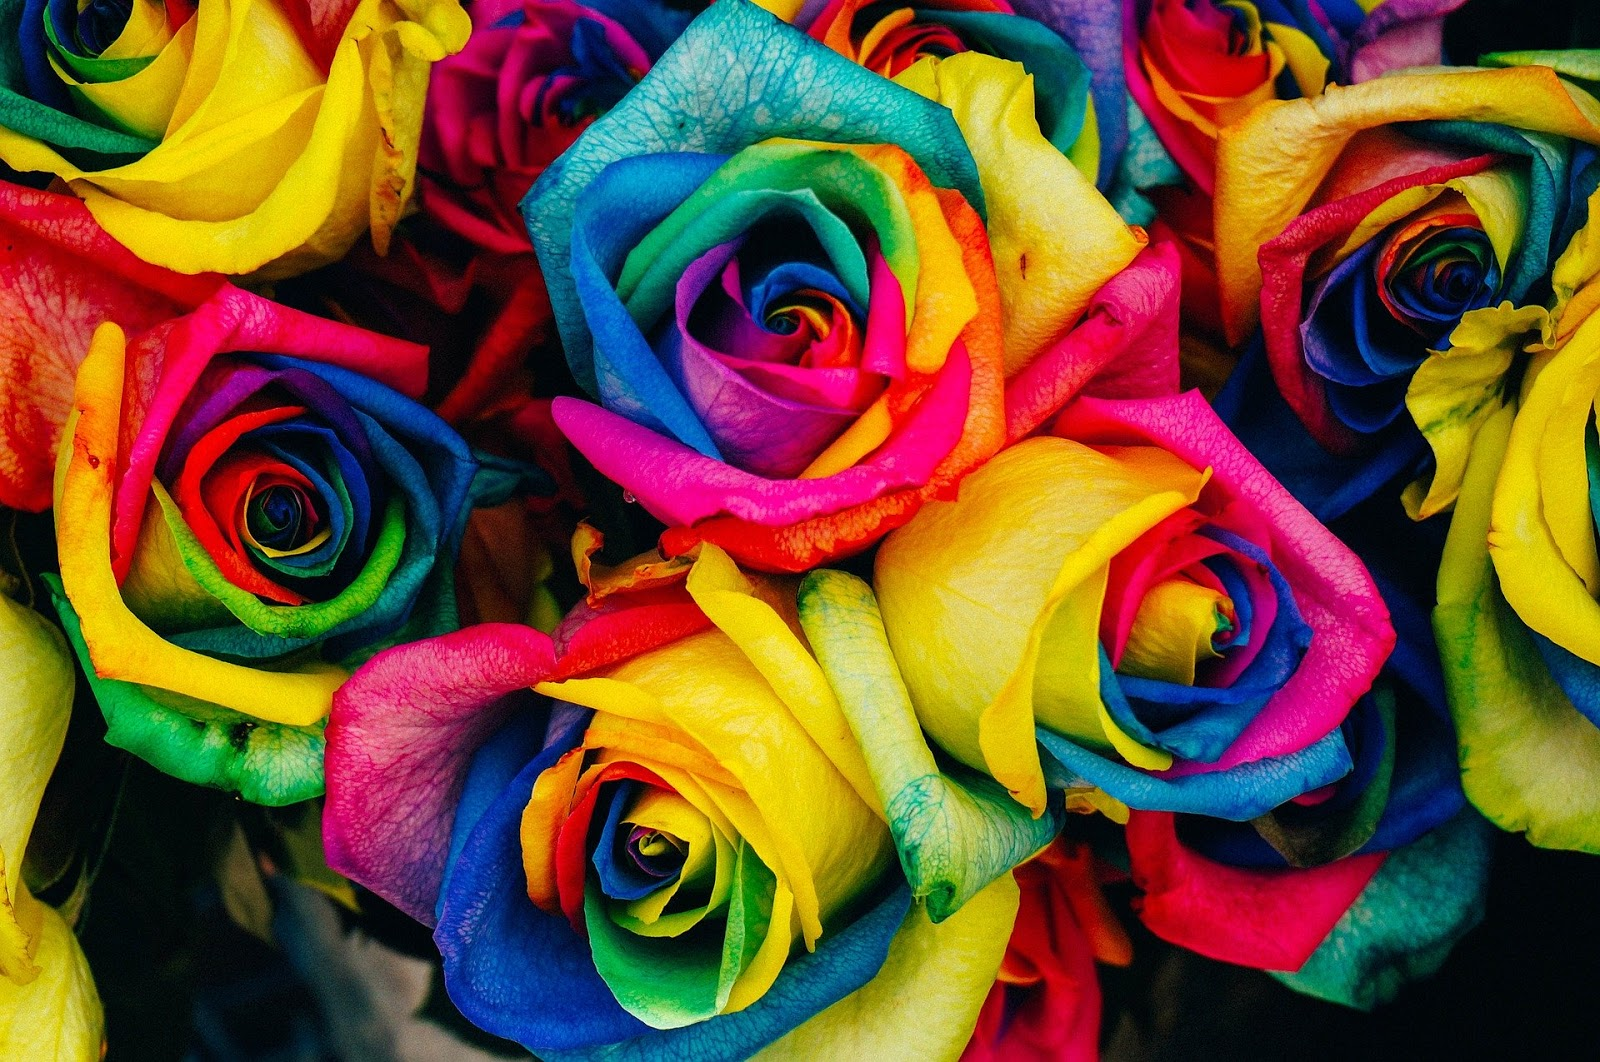 roses-colored-tinted-colorful, rose images